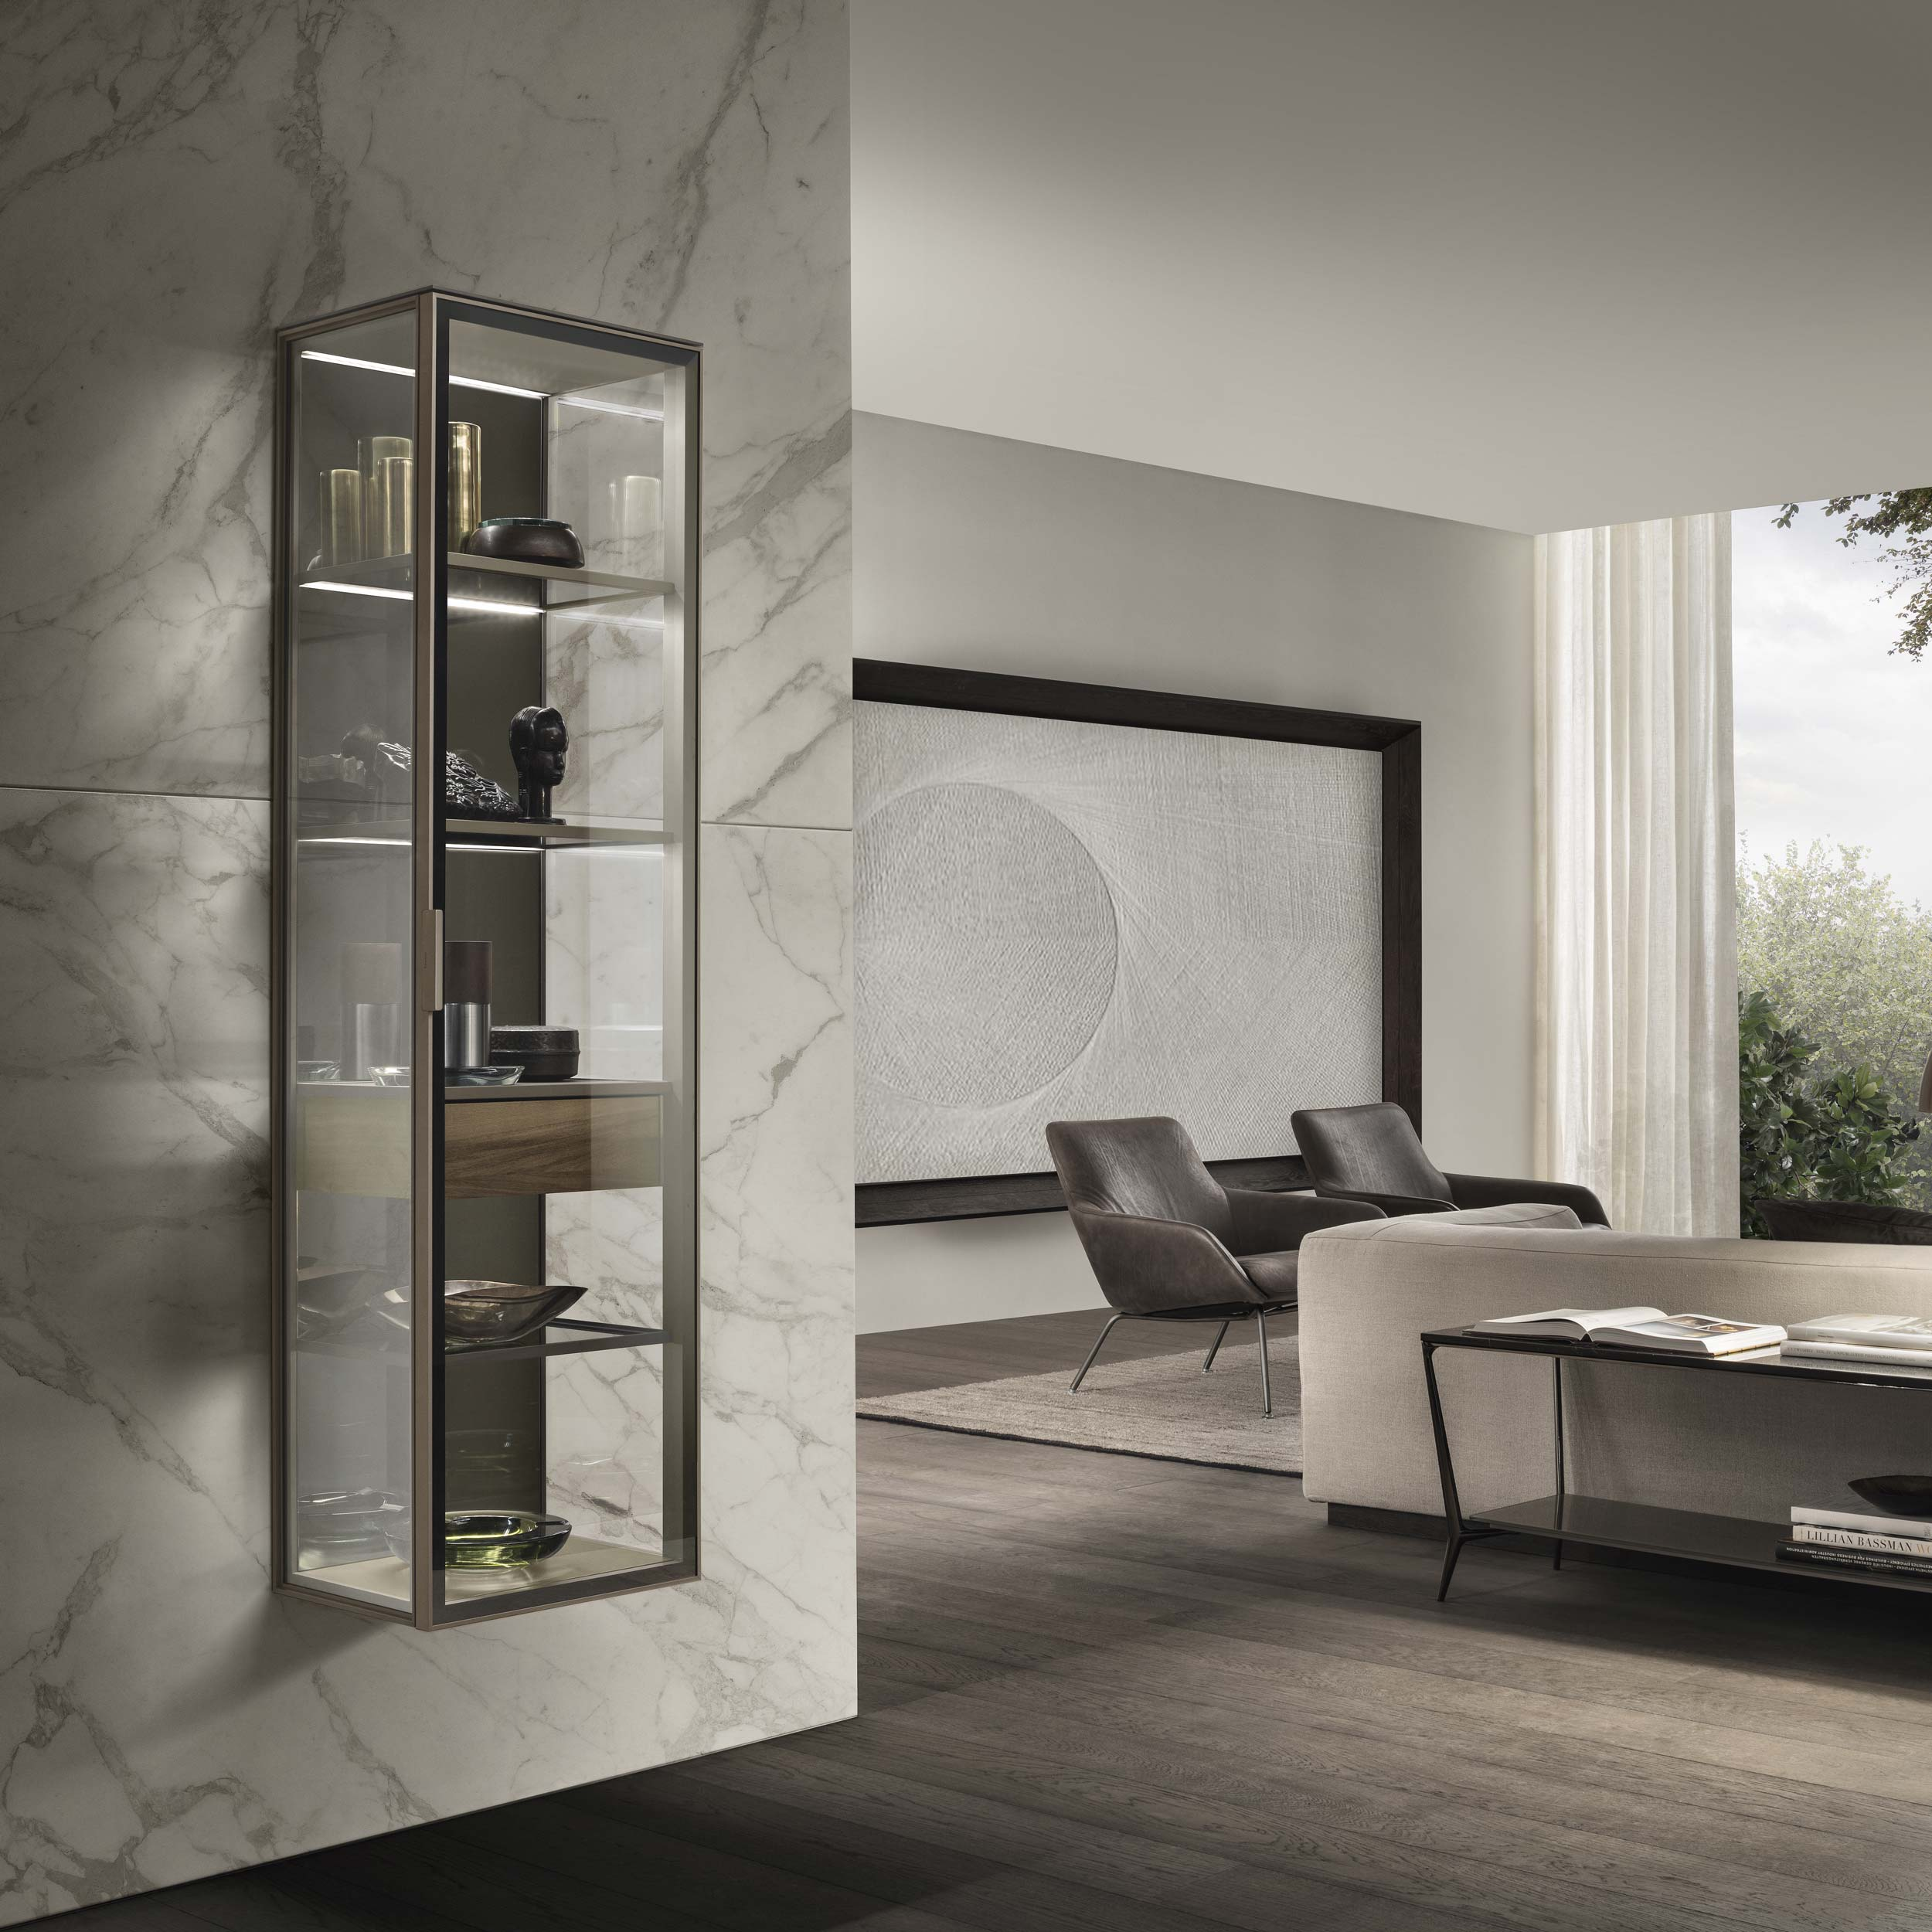 Alambra Suspended Cabinet with Hinged Door